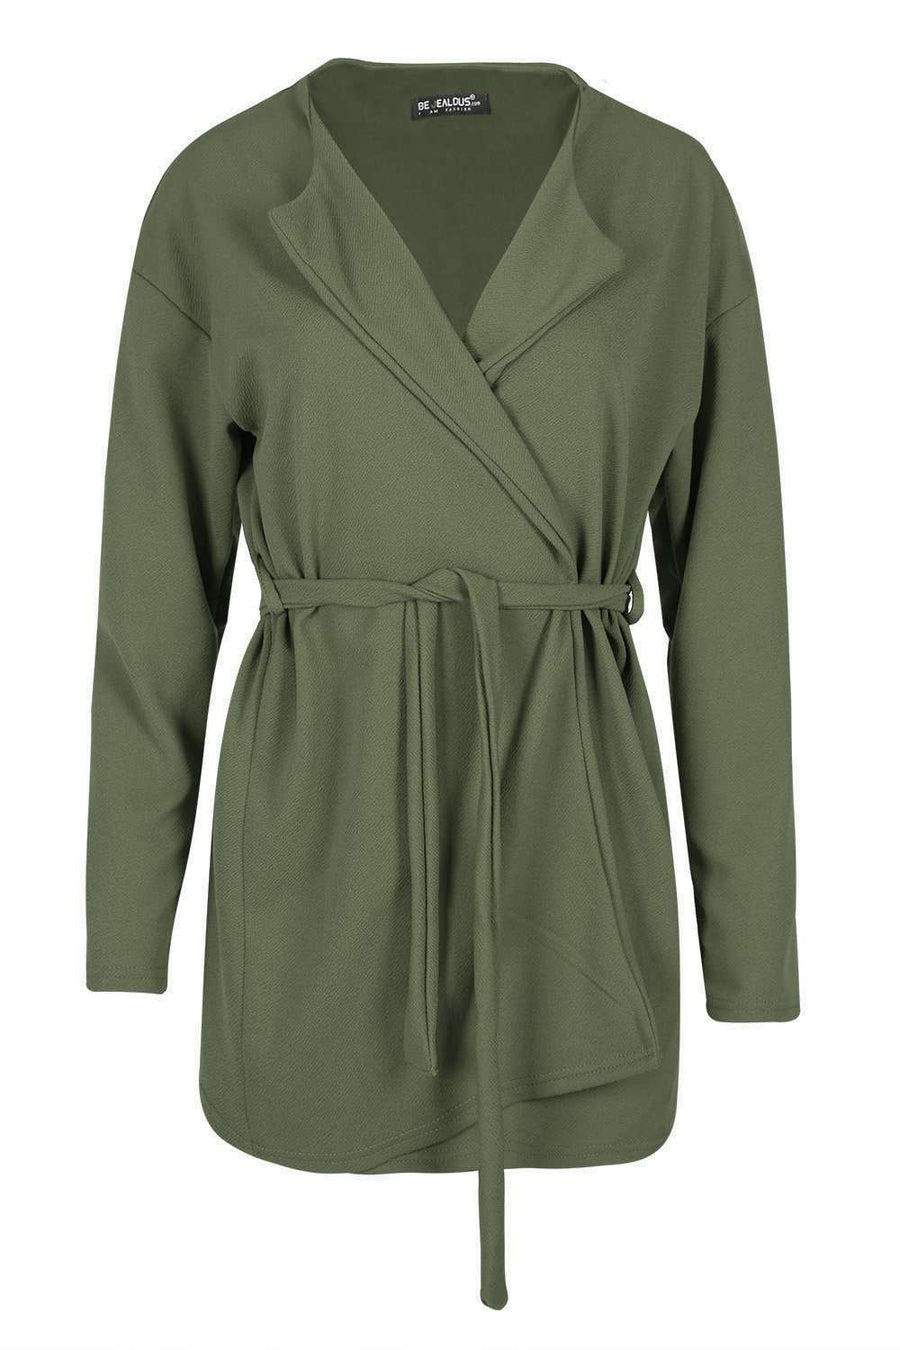 Janet Long Sleeve Belted Waterfall Jacket - bejealous-com